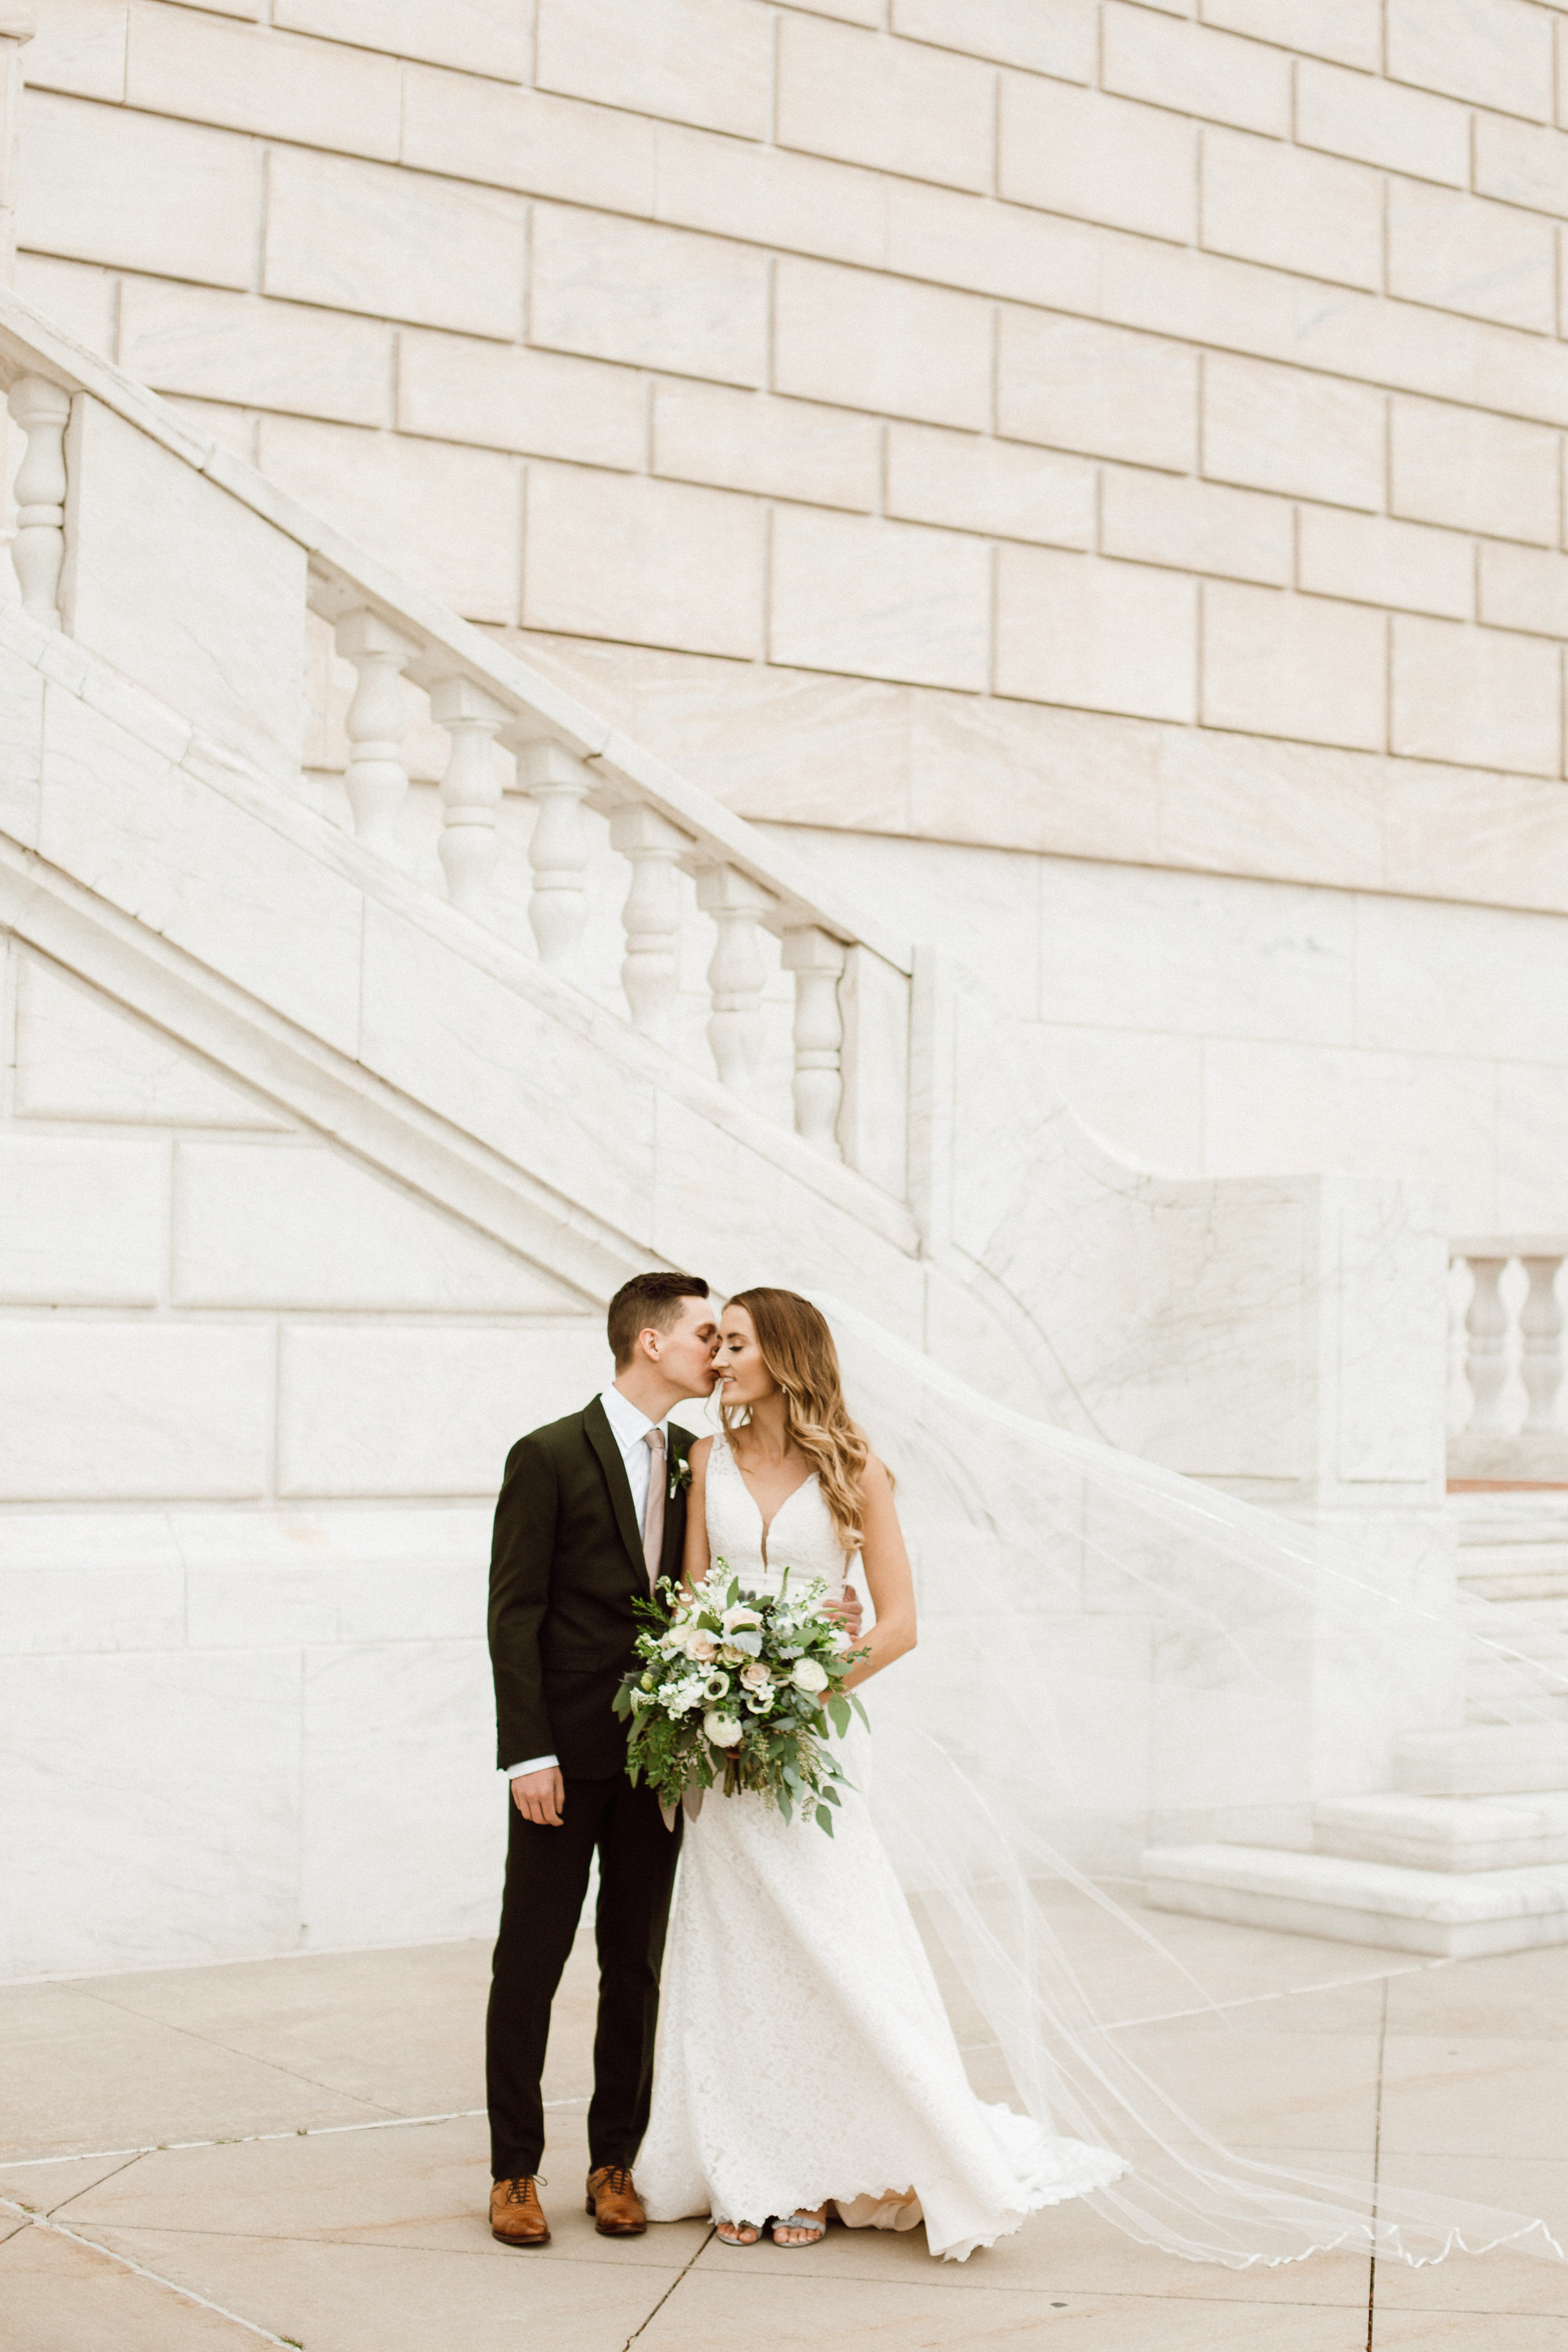 Katie_Vonasek_Photography_Ford_Piquette_Plant_Wedding_Detroit25.JPG